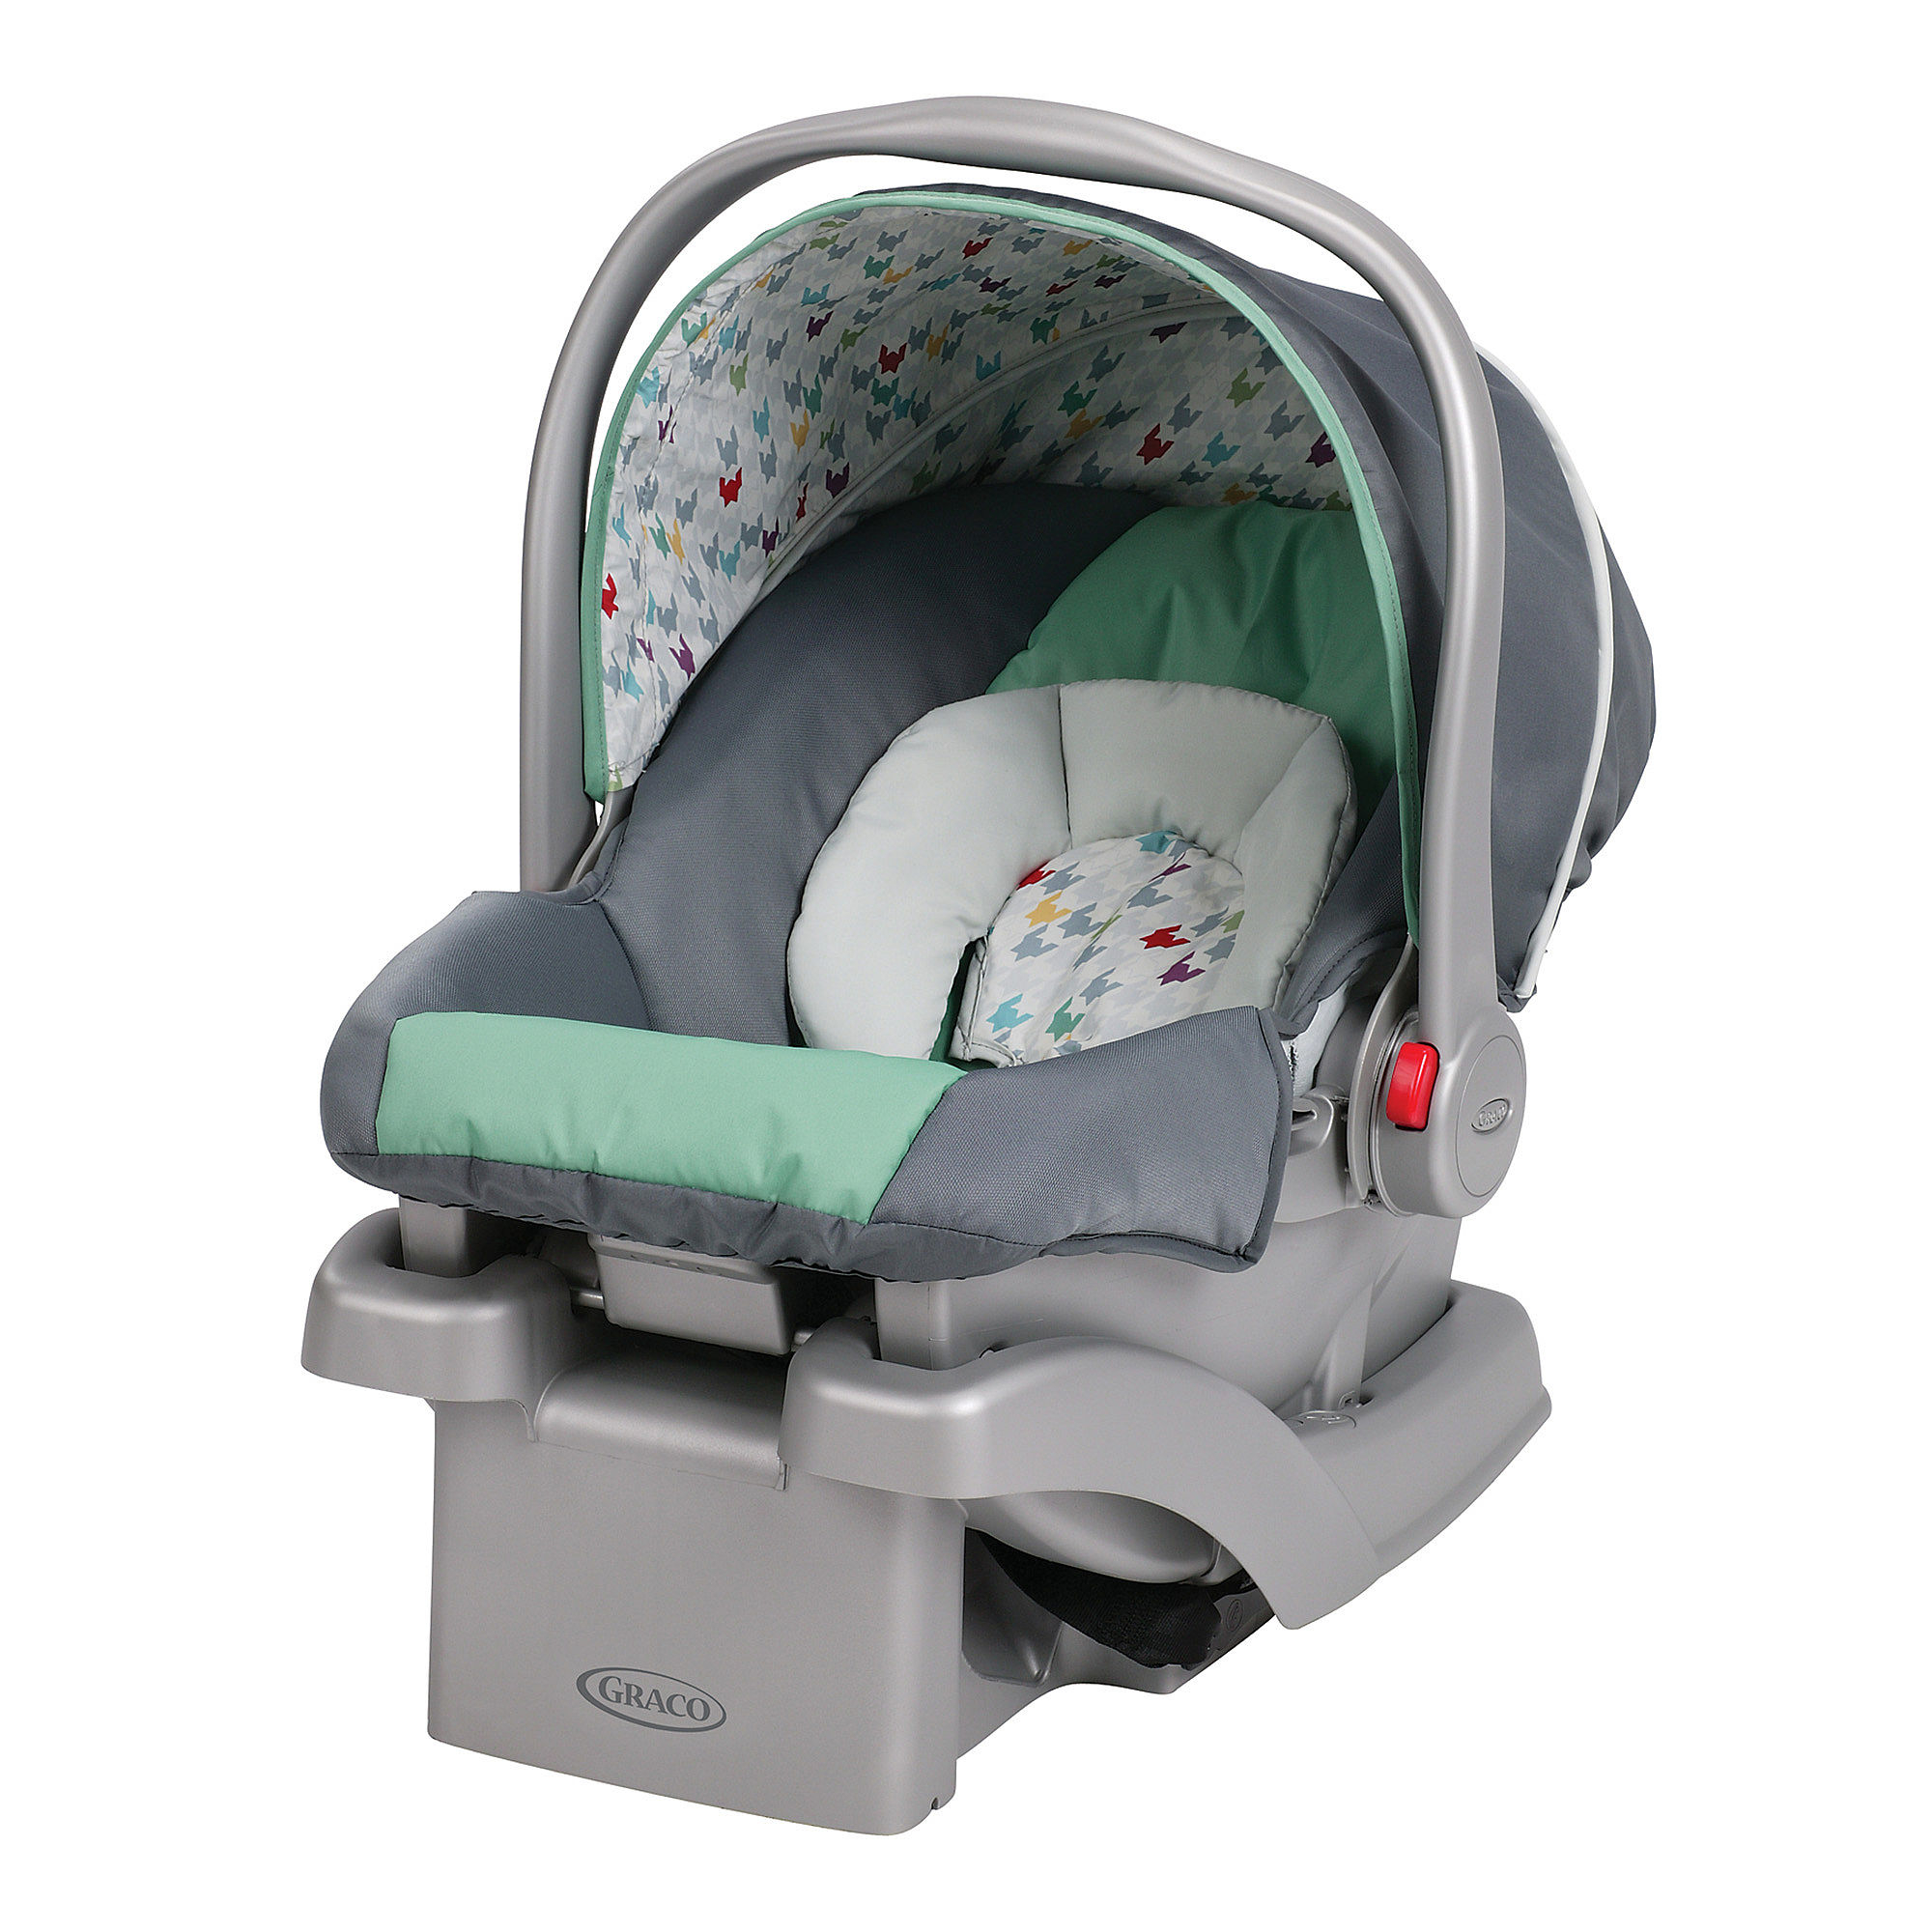 graco infant car seat instructions